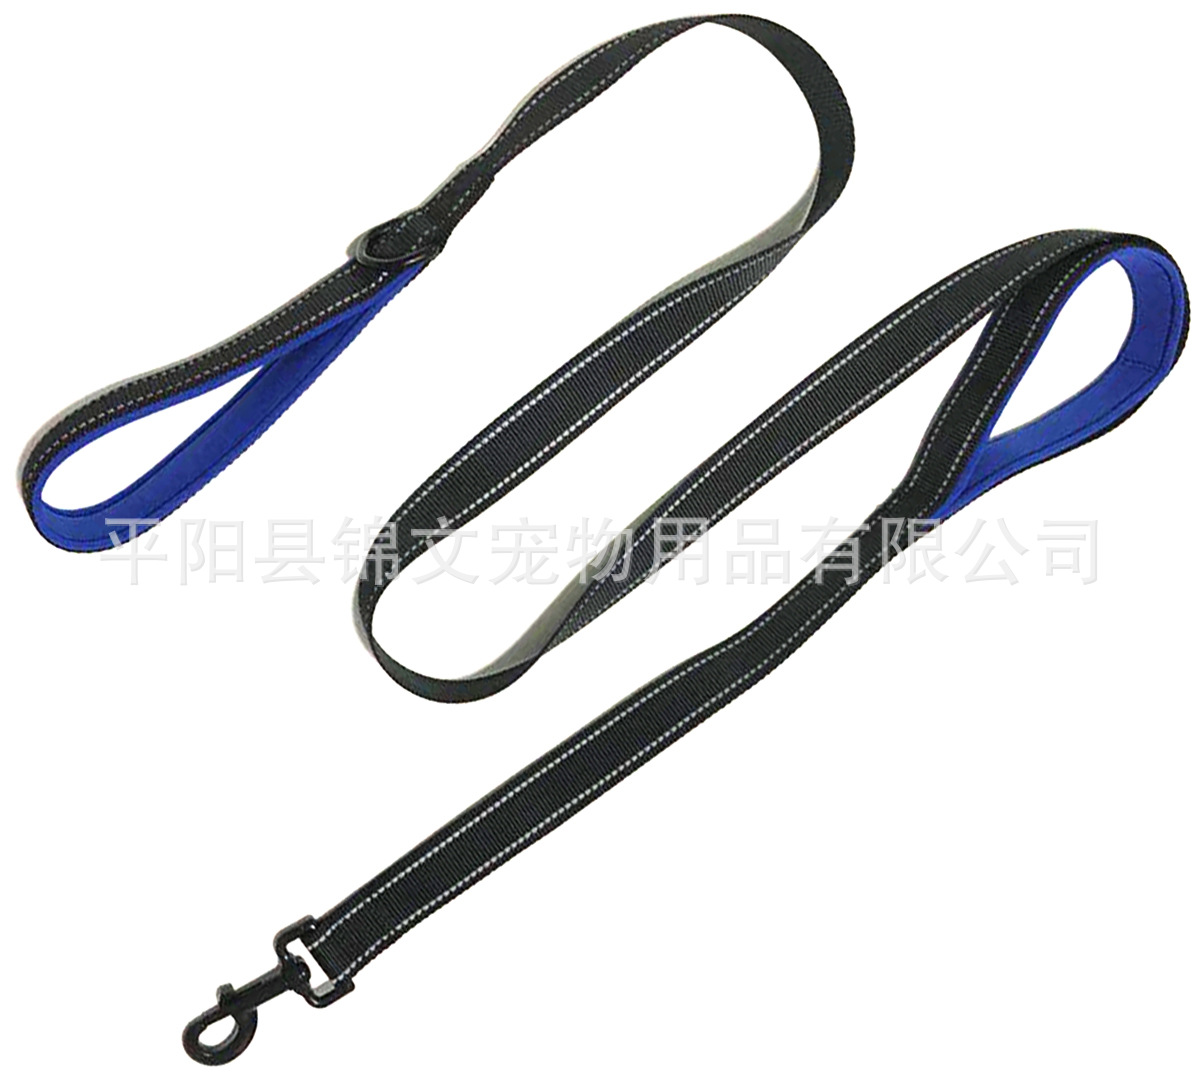 Pet Traction Reflective Strips Traction Belt Imitation Nylon Hand Dog Training Lanyard Dog Chain Dog Traction Pet Seat Belt